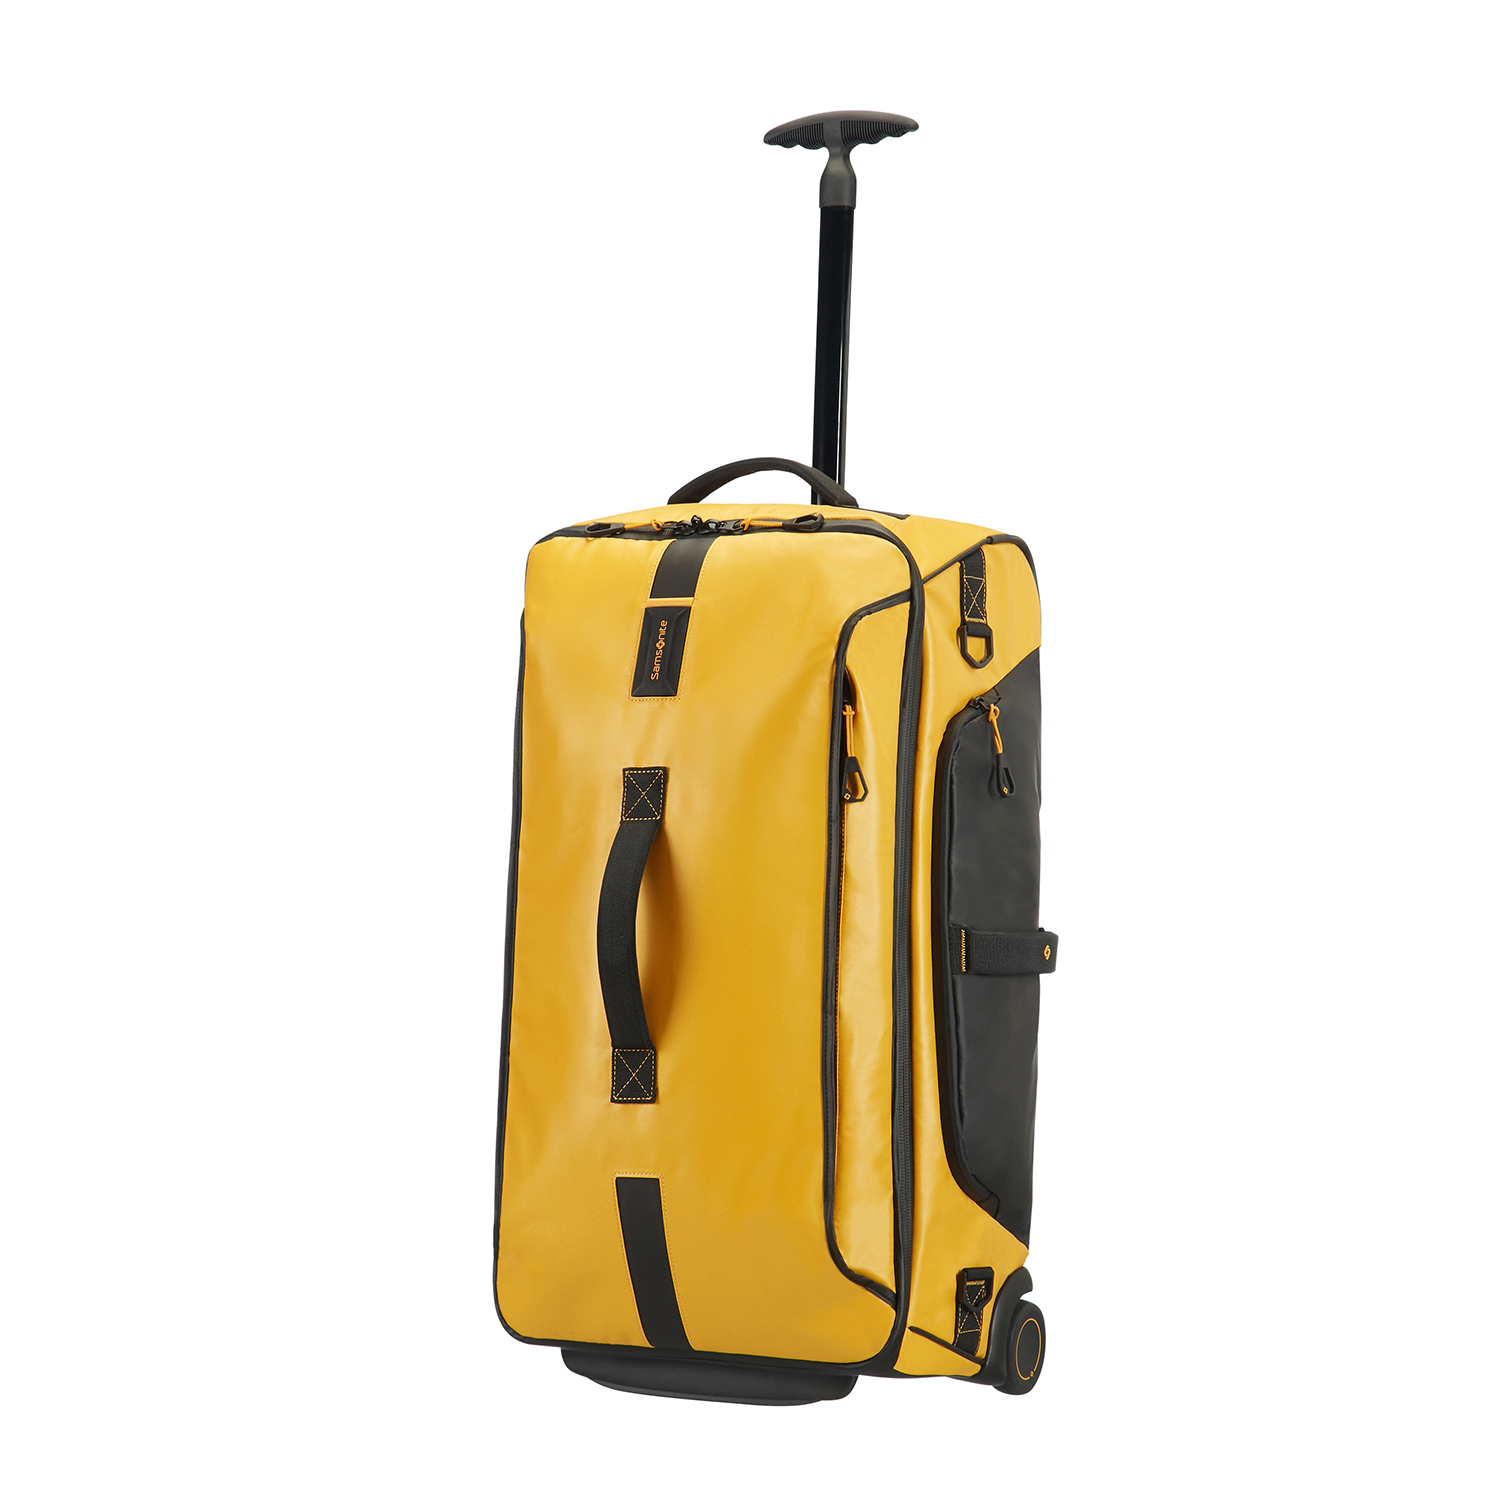 PARADIVER LIGHT-DUFFLE/WH 67/24 S01N-009-SF000*06